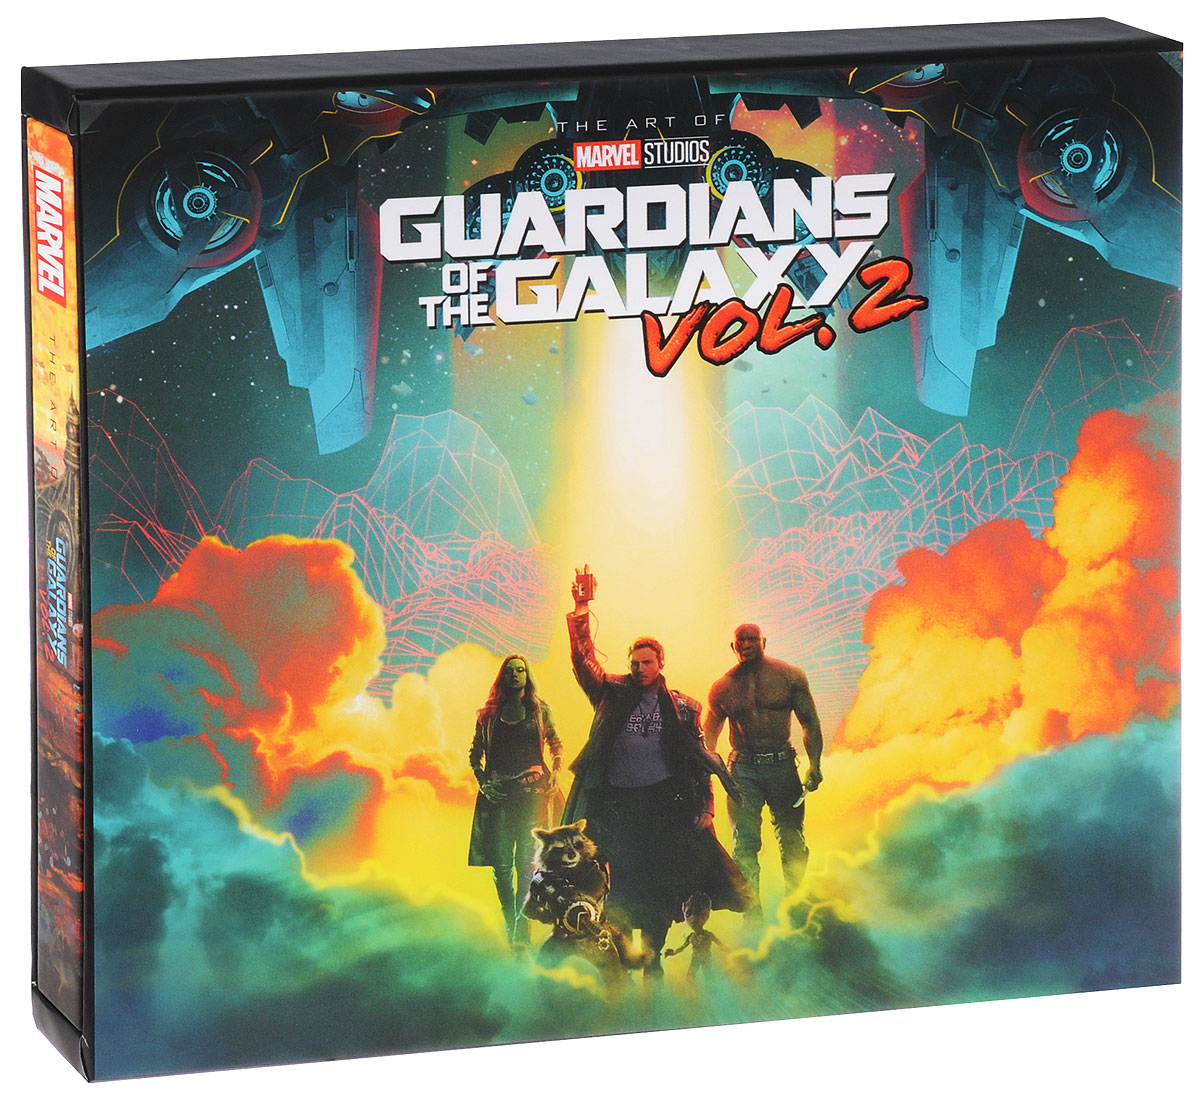 Guardians of the Galaxy Vol. 2 guardians of the galaxy new guard vol 1 emporer quill